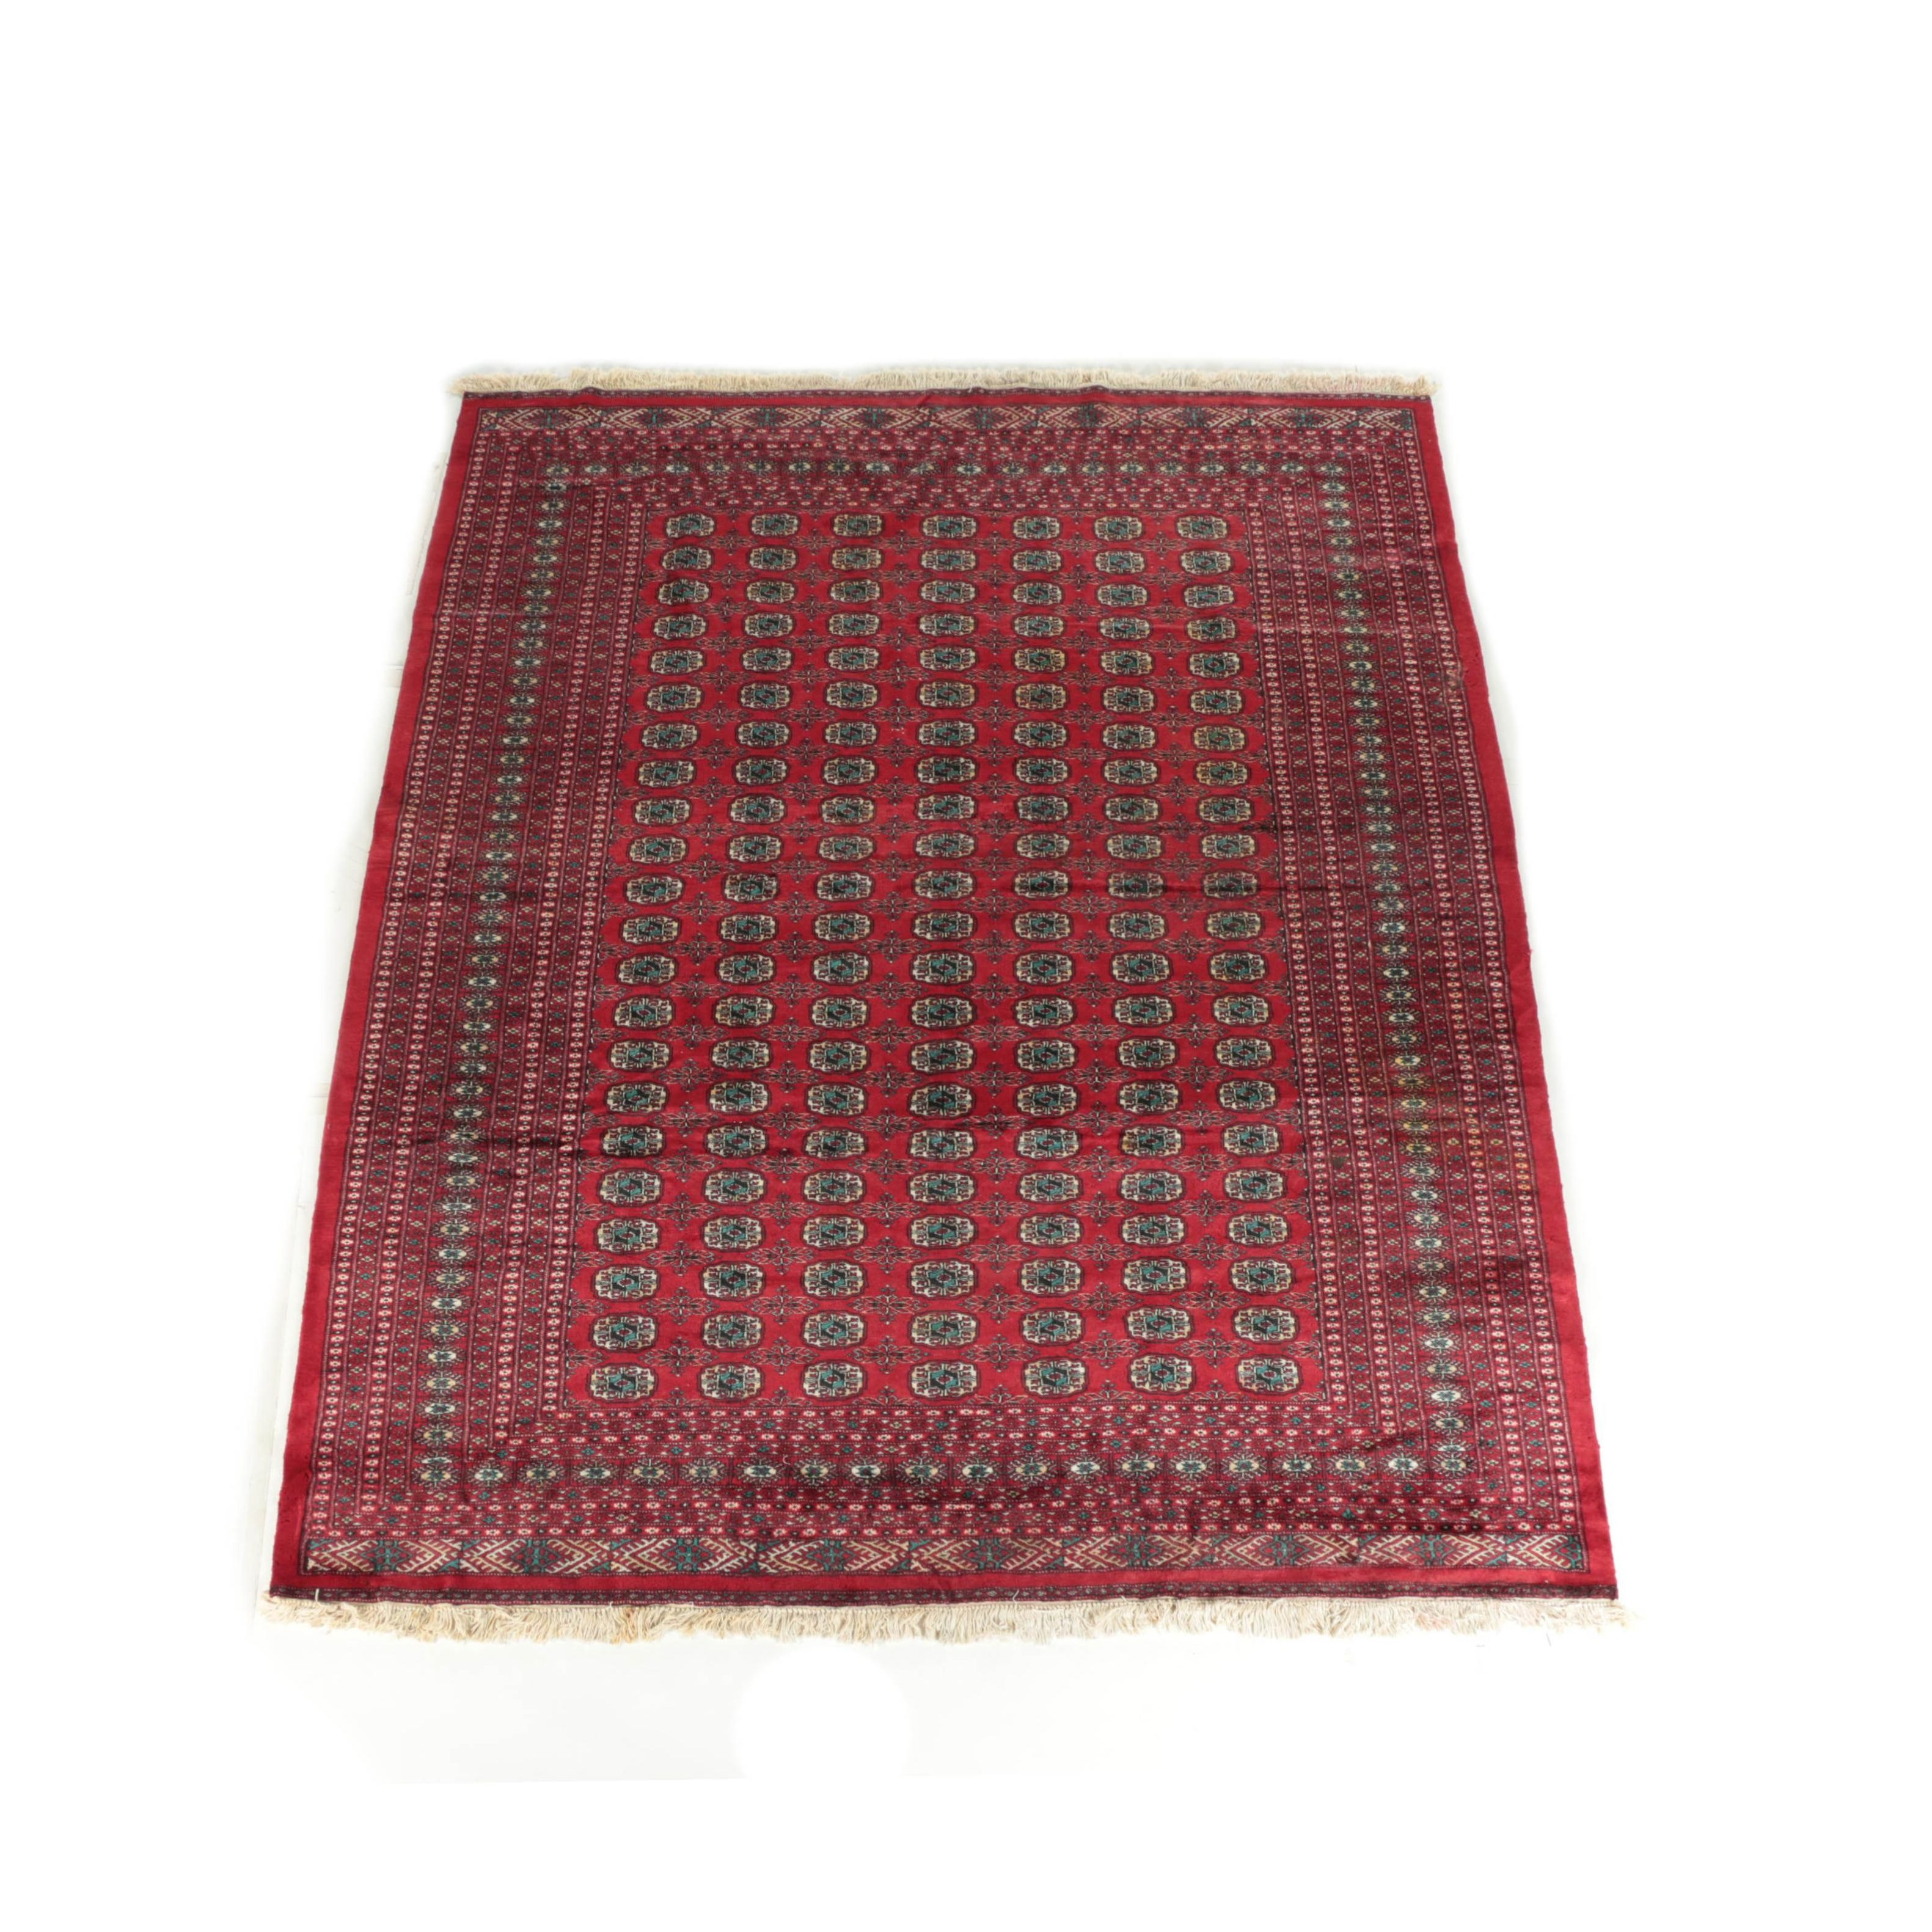 Vintage Hand-Knotted Afghan Bokhara Wool Area Rug